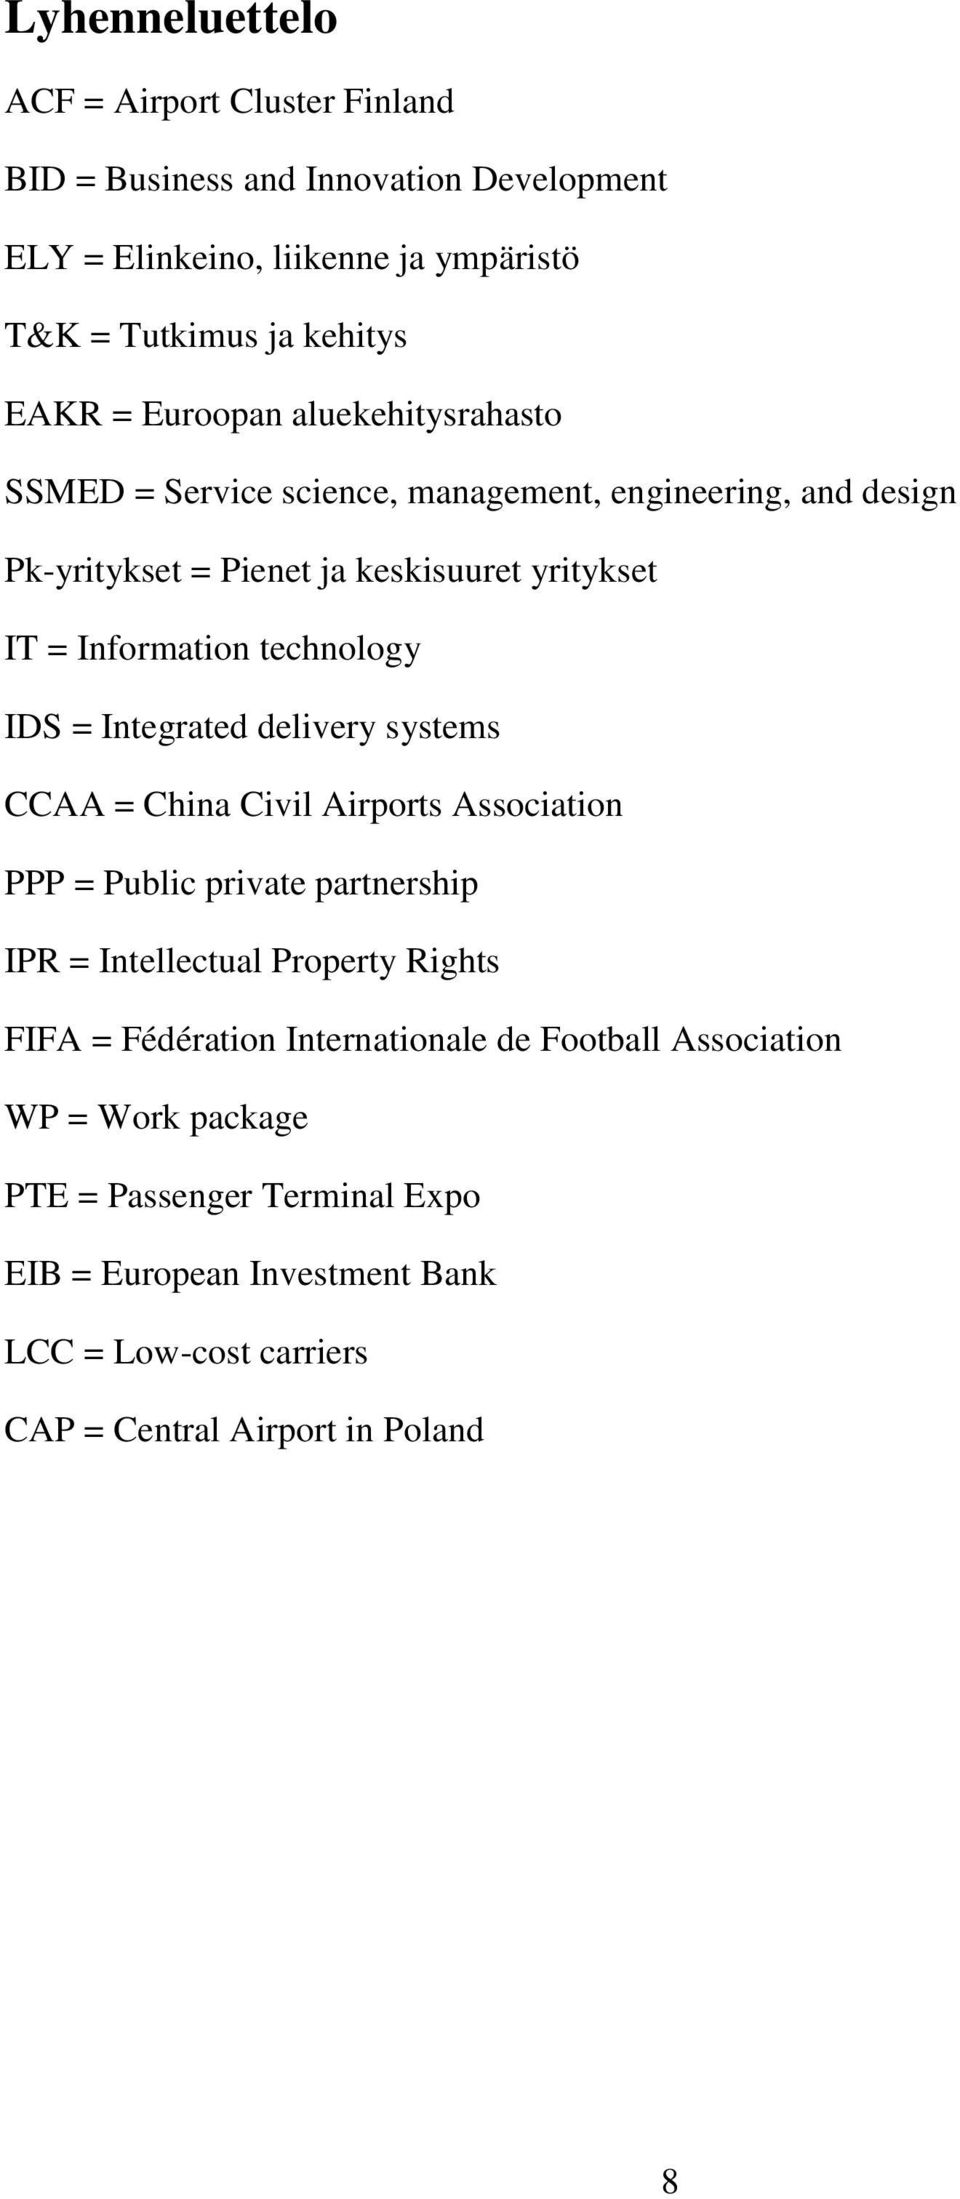 IDS = Integrated delivery systems CCAA = China Civil Airports Association PPP = Public private partnership IPR = Intellectual Property Rights FIFA = Fédération